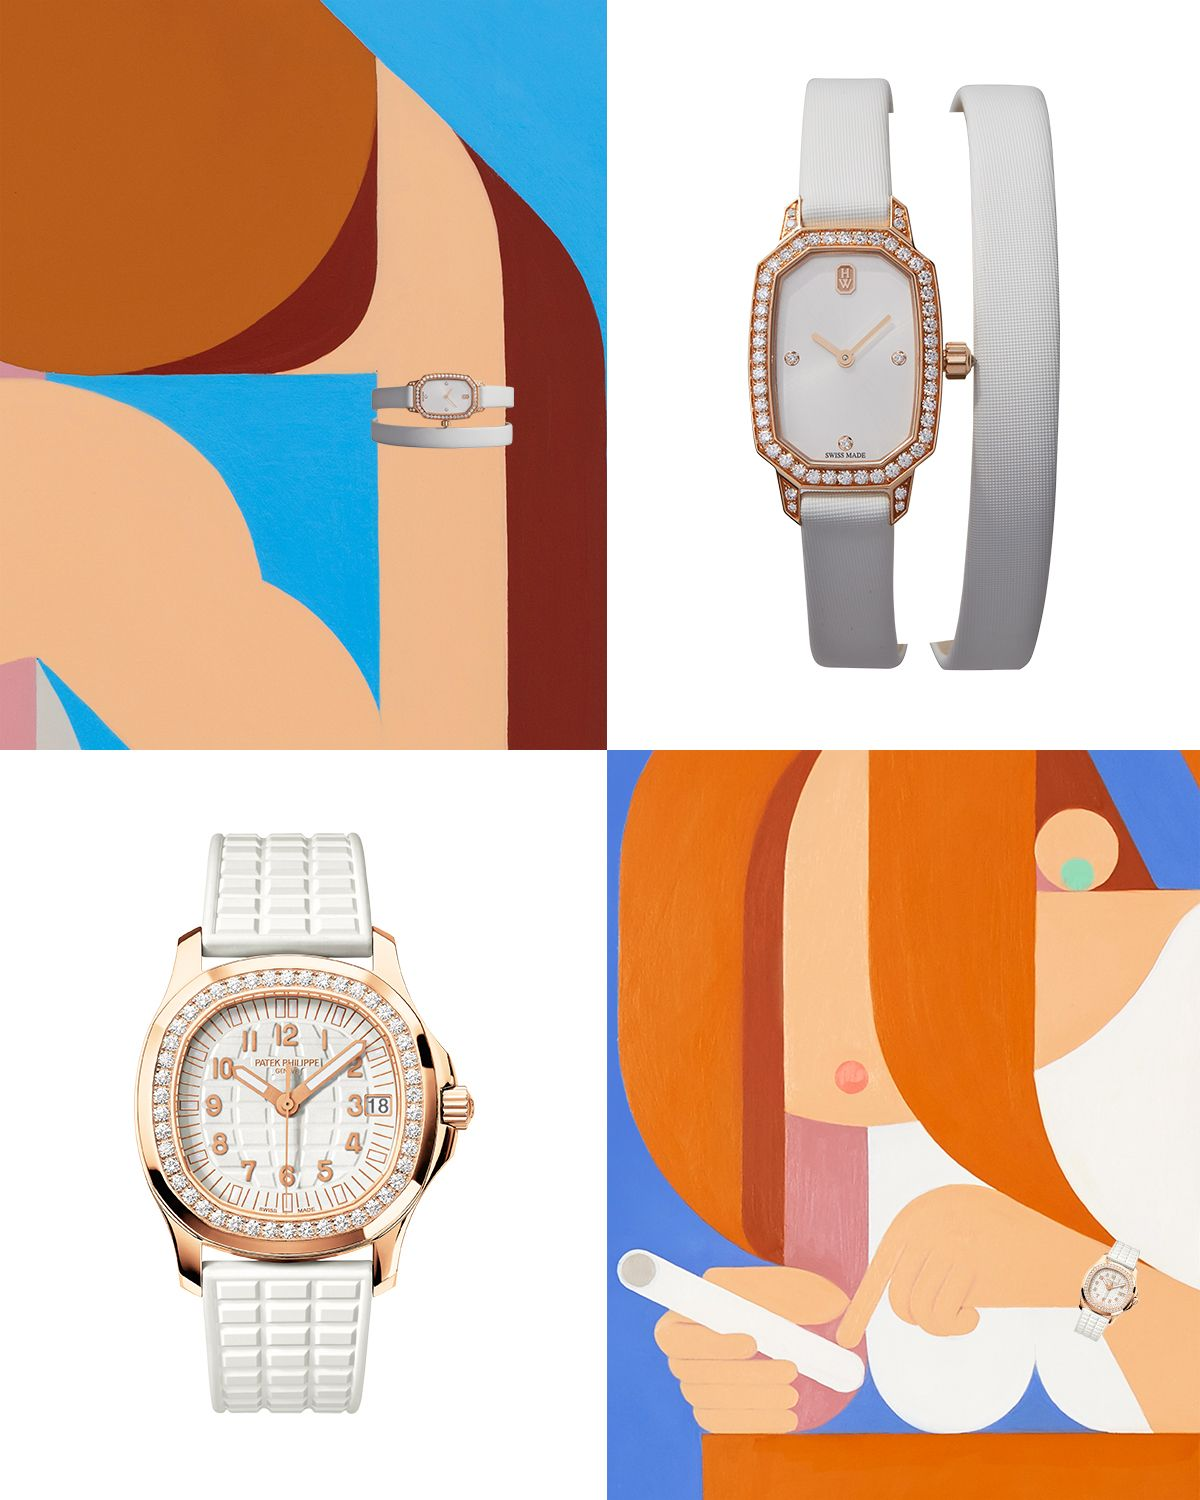 """<p>From top: <strong data-redactor-tag=""""strong"""" data-verified=""""redactor"""">Harry Winston Timepiece</strong>, price upon request, 212-399-1000; <strong data-redactor-tag=""""strong"""" data-verified=""""redactor"""">Patek Philippe</strong> watch, $44,220, <a href=""""http://www.patek.com/"""" target=""""_blank"""" data-tracking-id=""""recirc-text-link"""">patek.com</a>.</p>"""